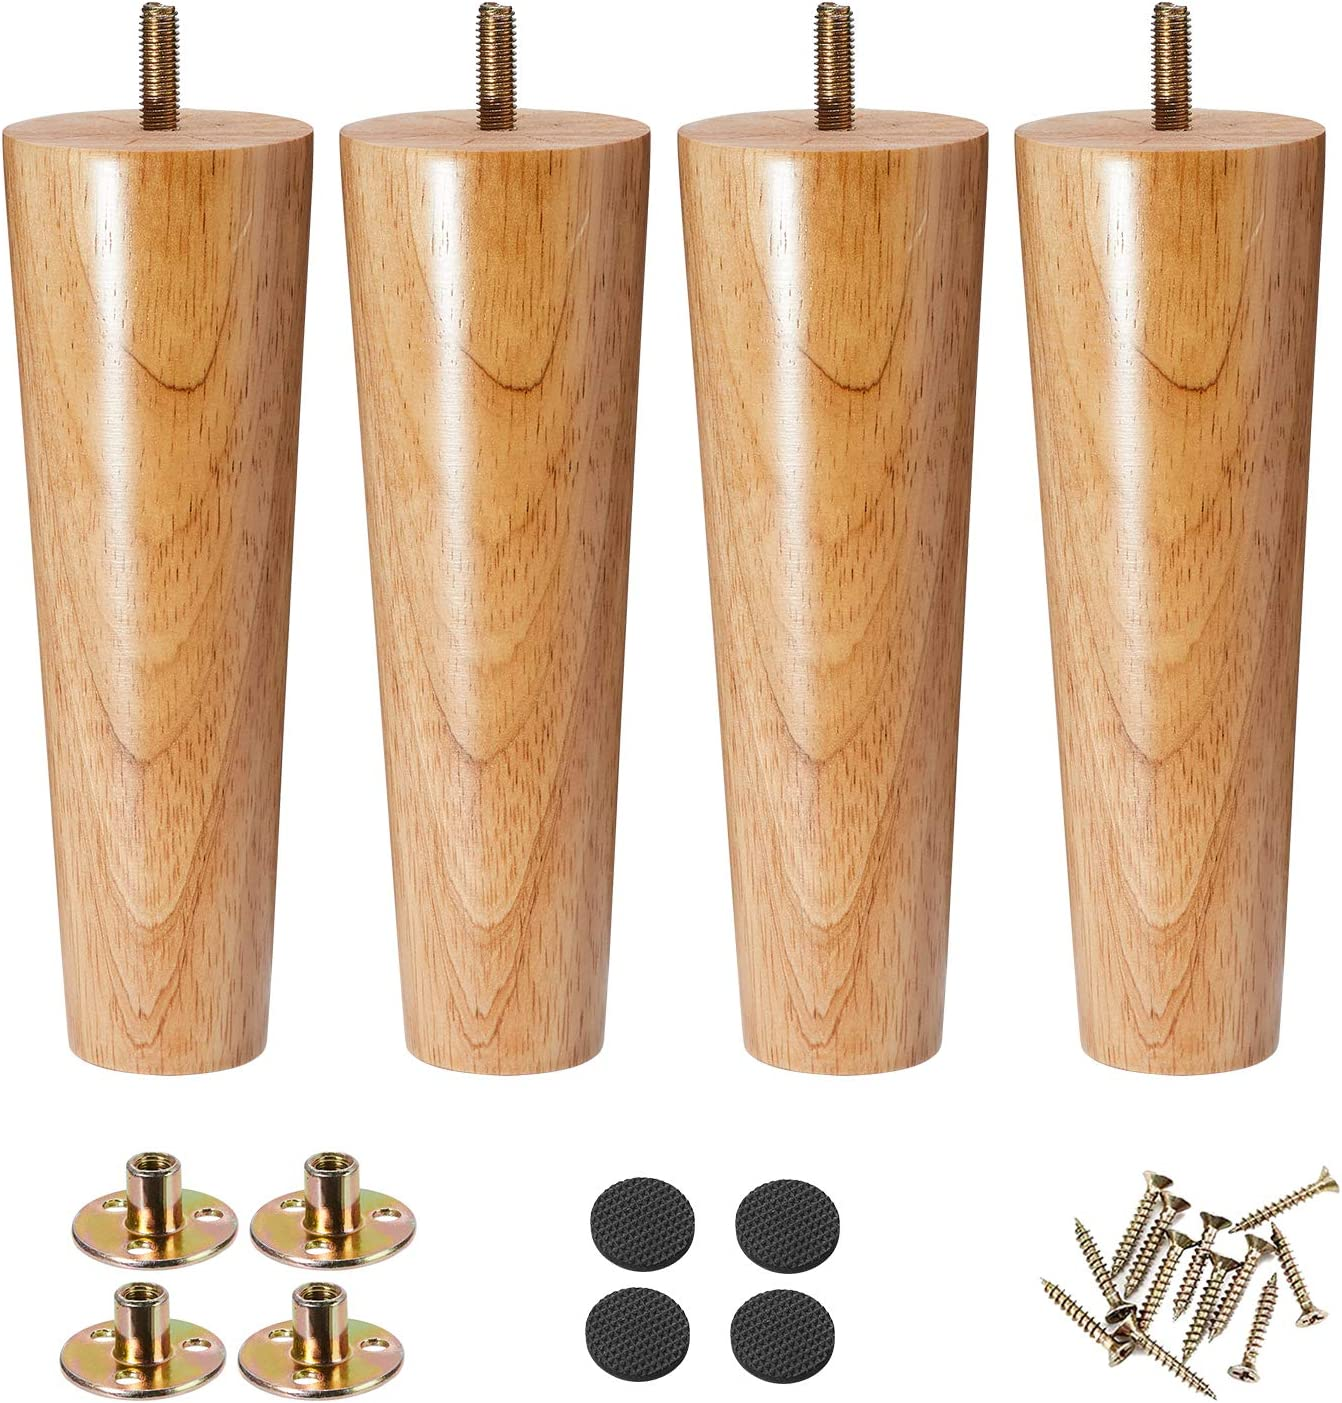 Furniture Legs 8 Inches, Tapered Sofa Legs, Wood Replacement Legs for Mid Century Style Couch, Ottoman, Dresser, Cabinet, Pack of 4 (8inch, Straight)